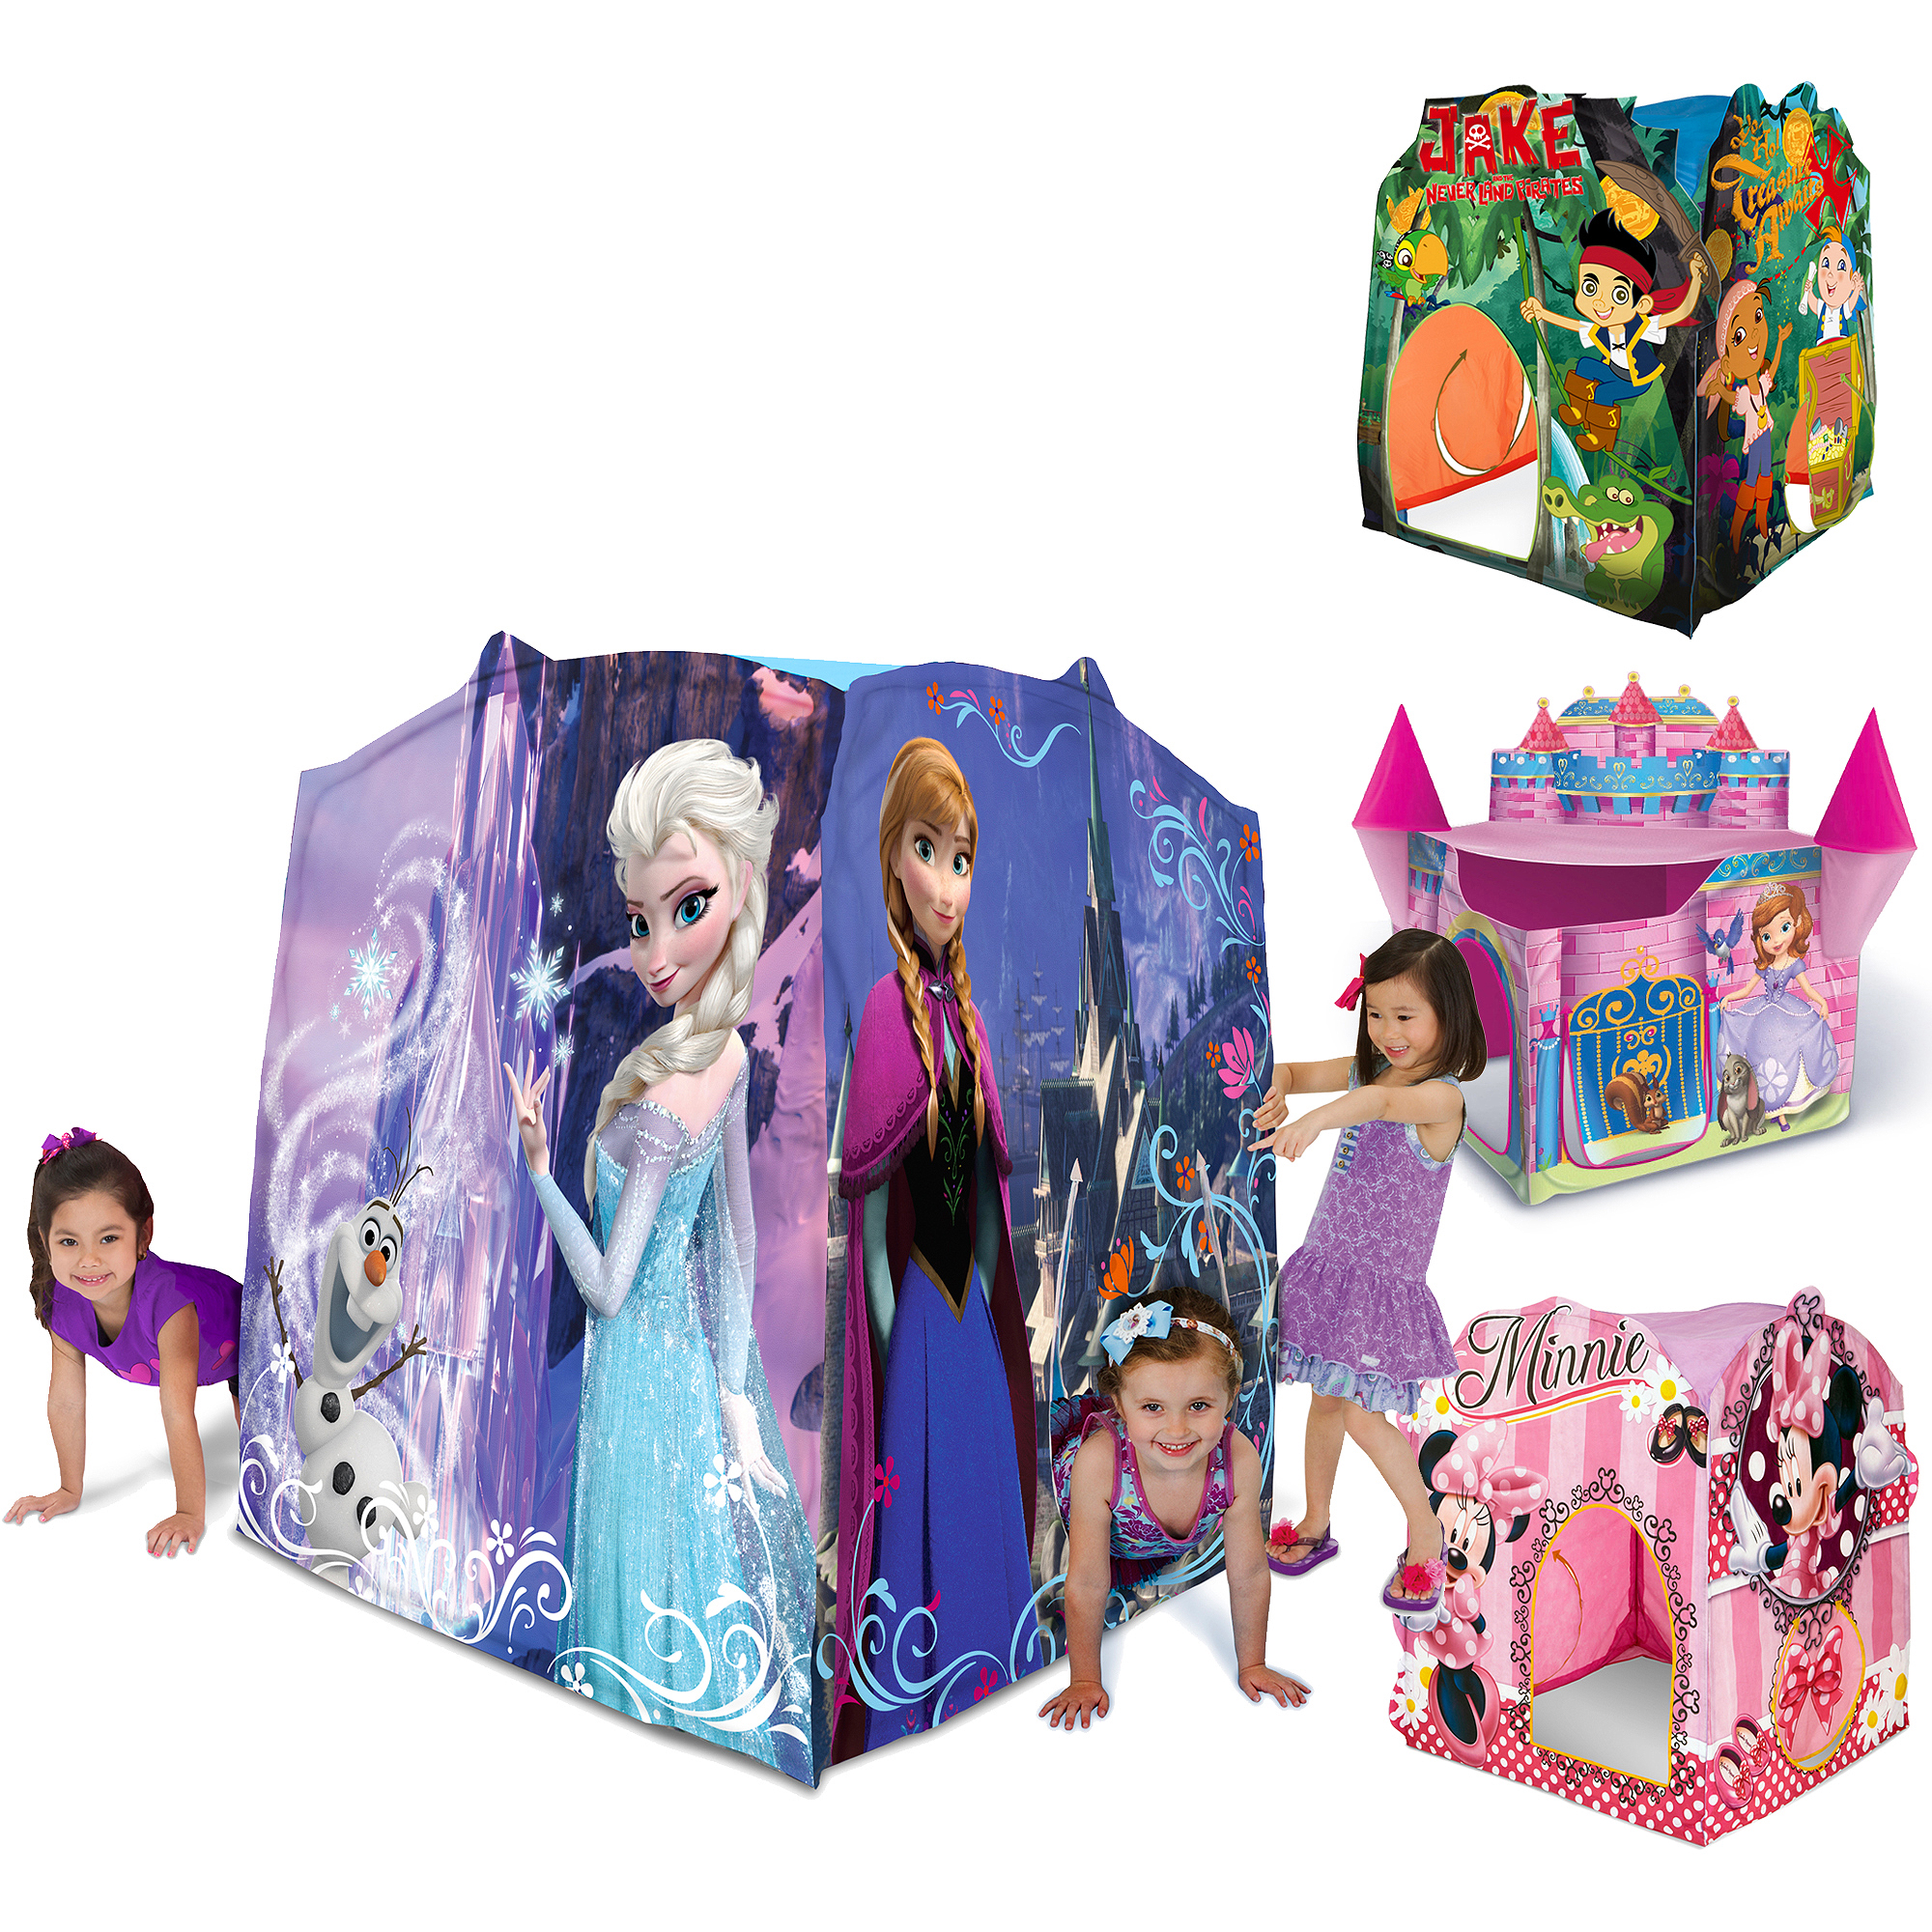 Disney Play Tent Characters- Frozen, Sofia, Jake, & Minnie